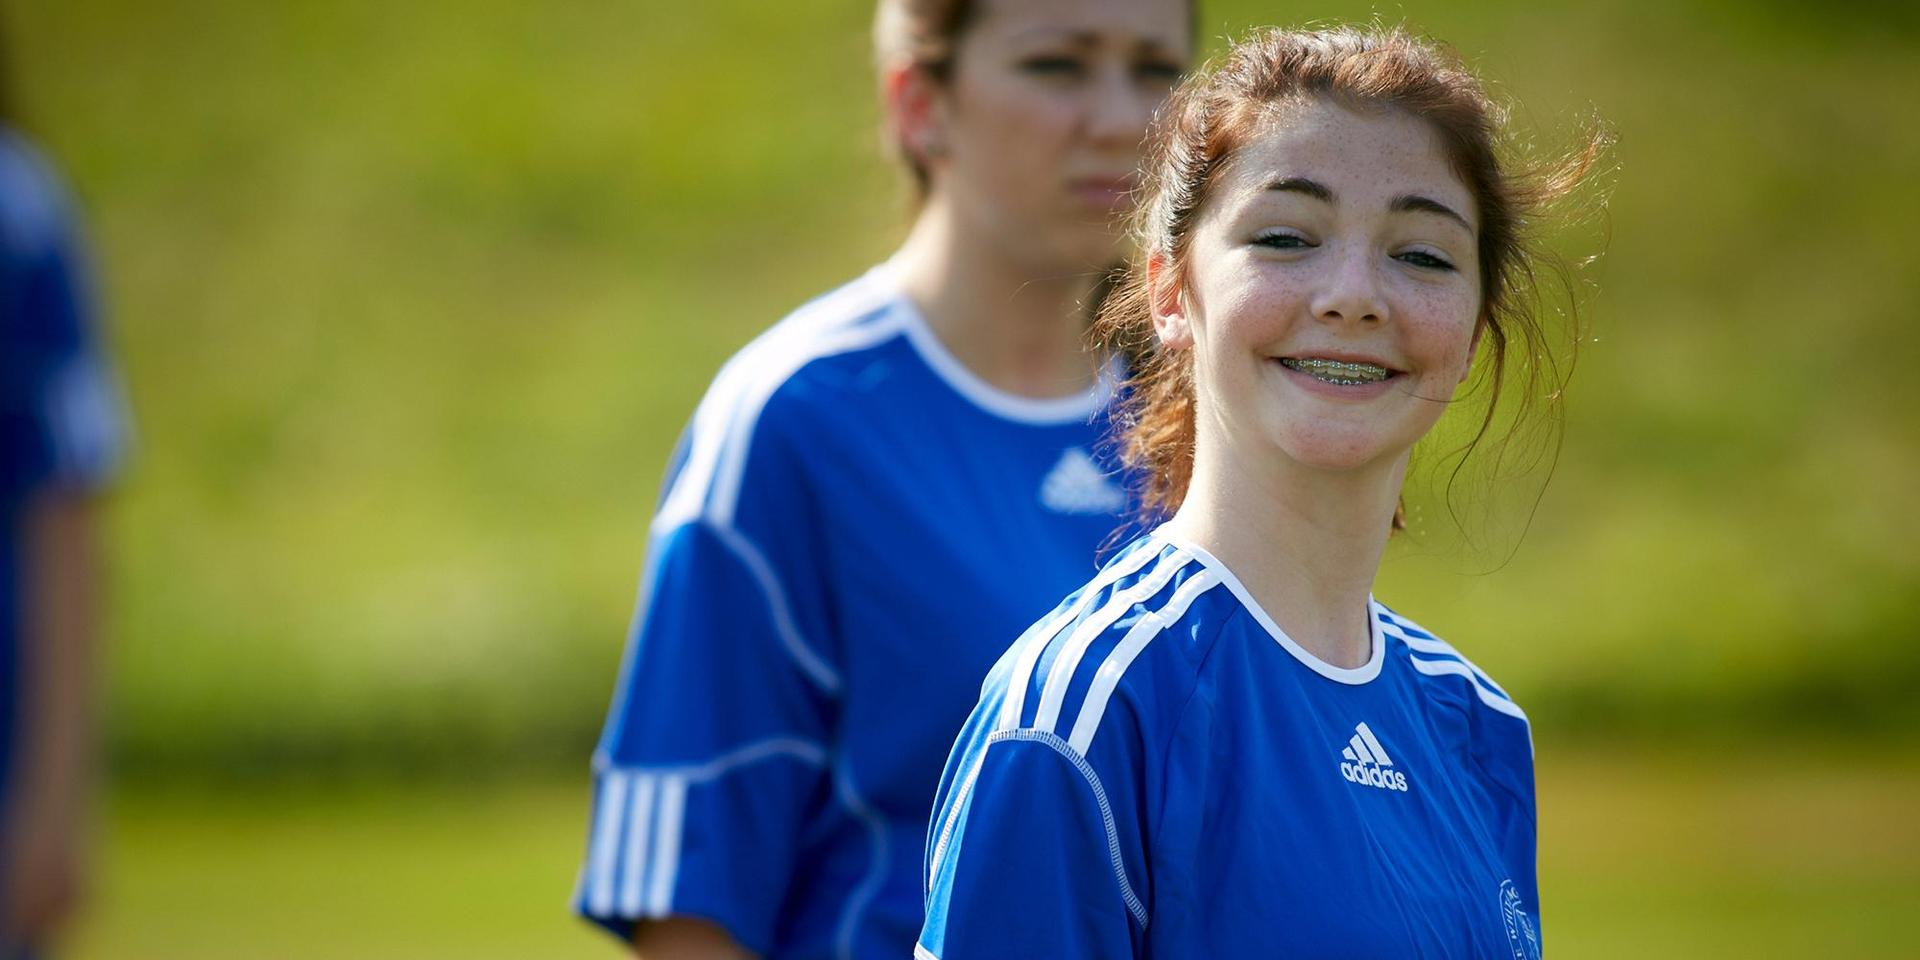 A student soccer player smiling at the camera.